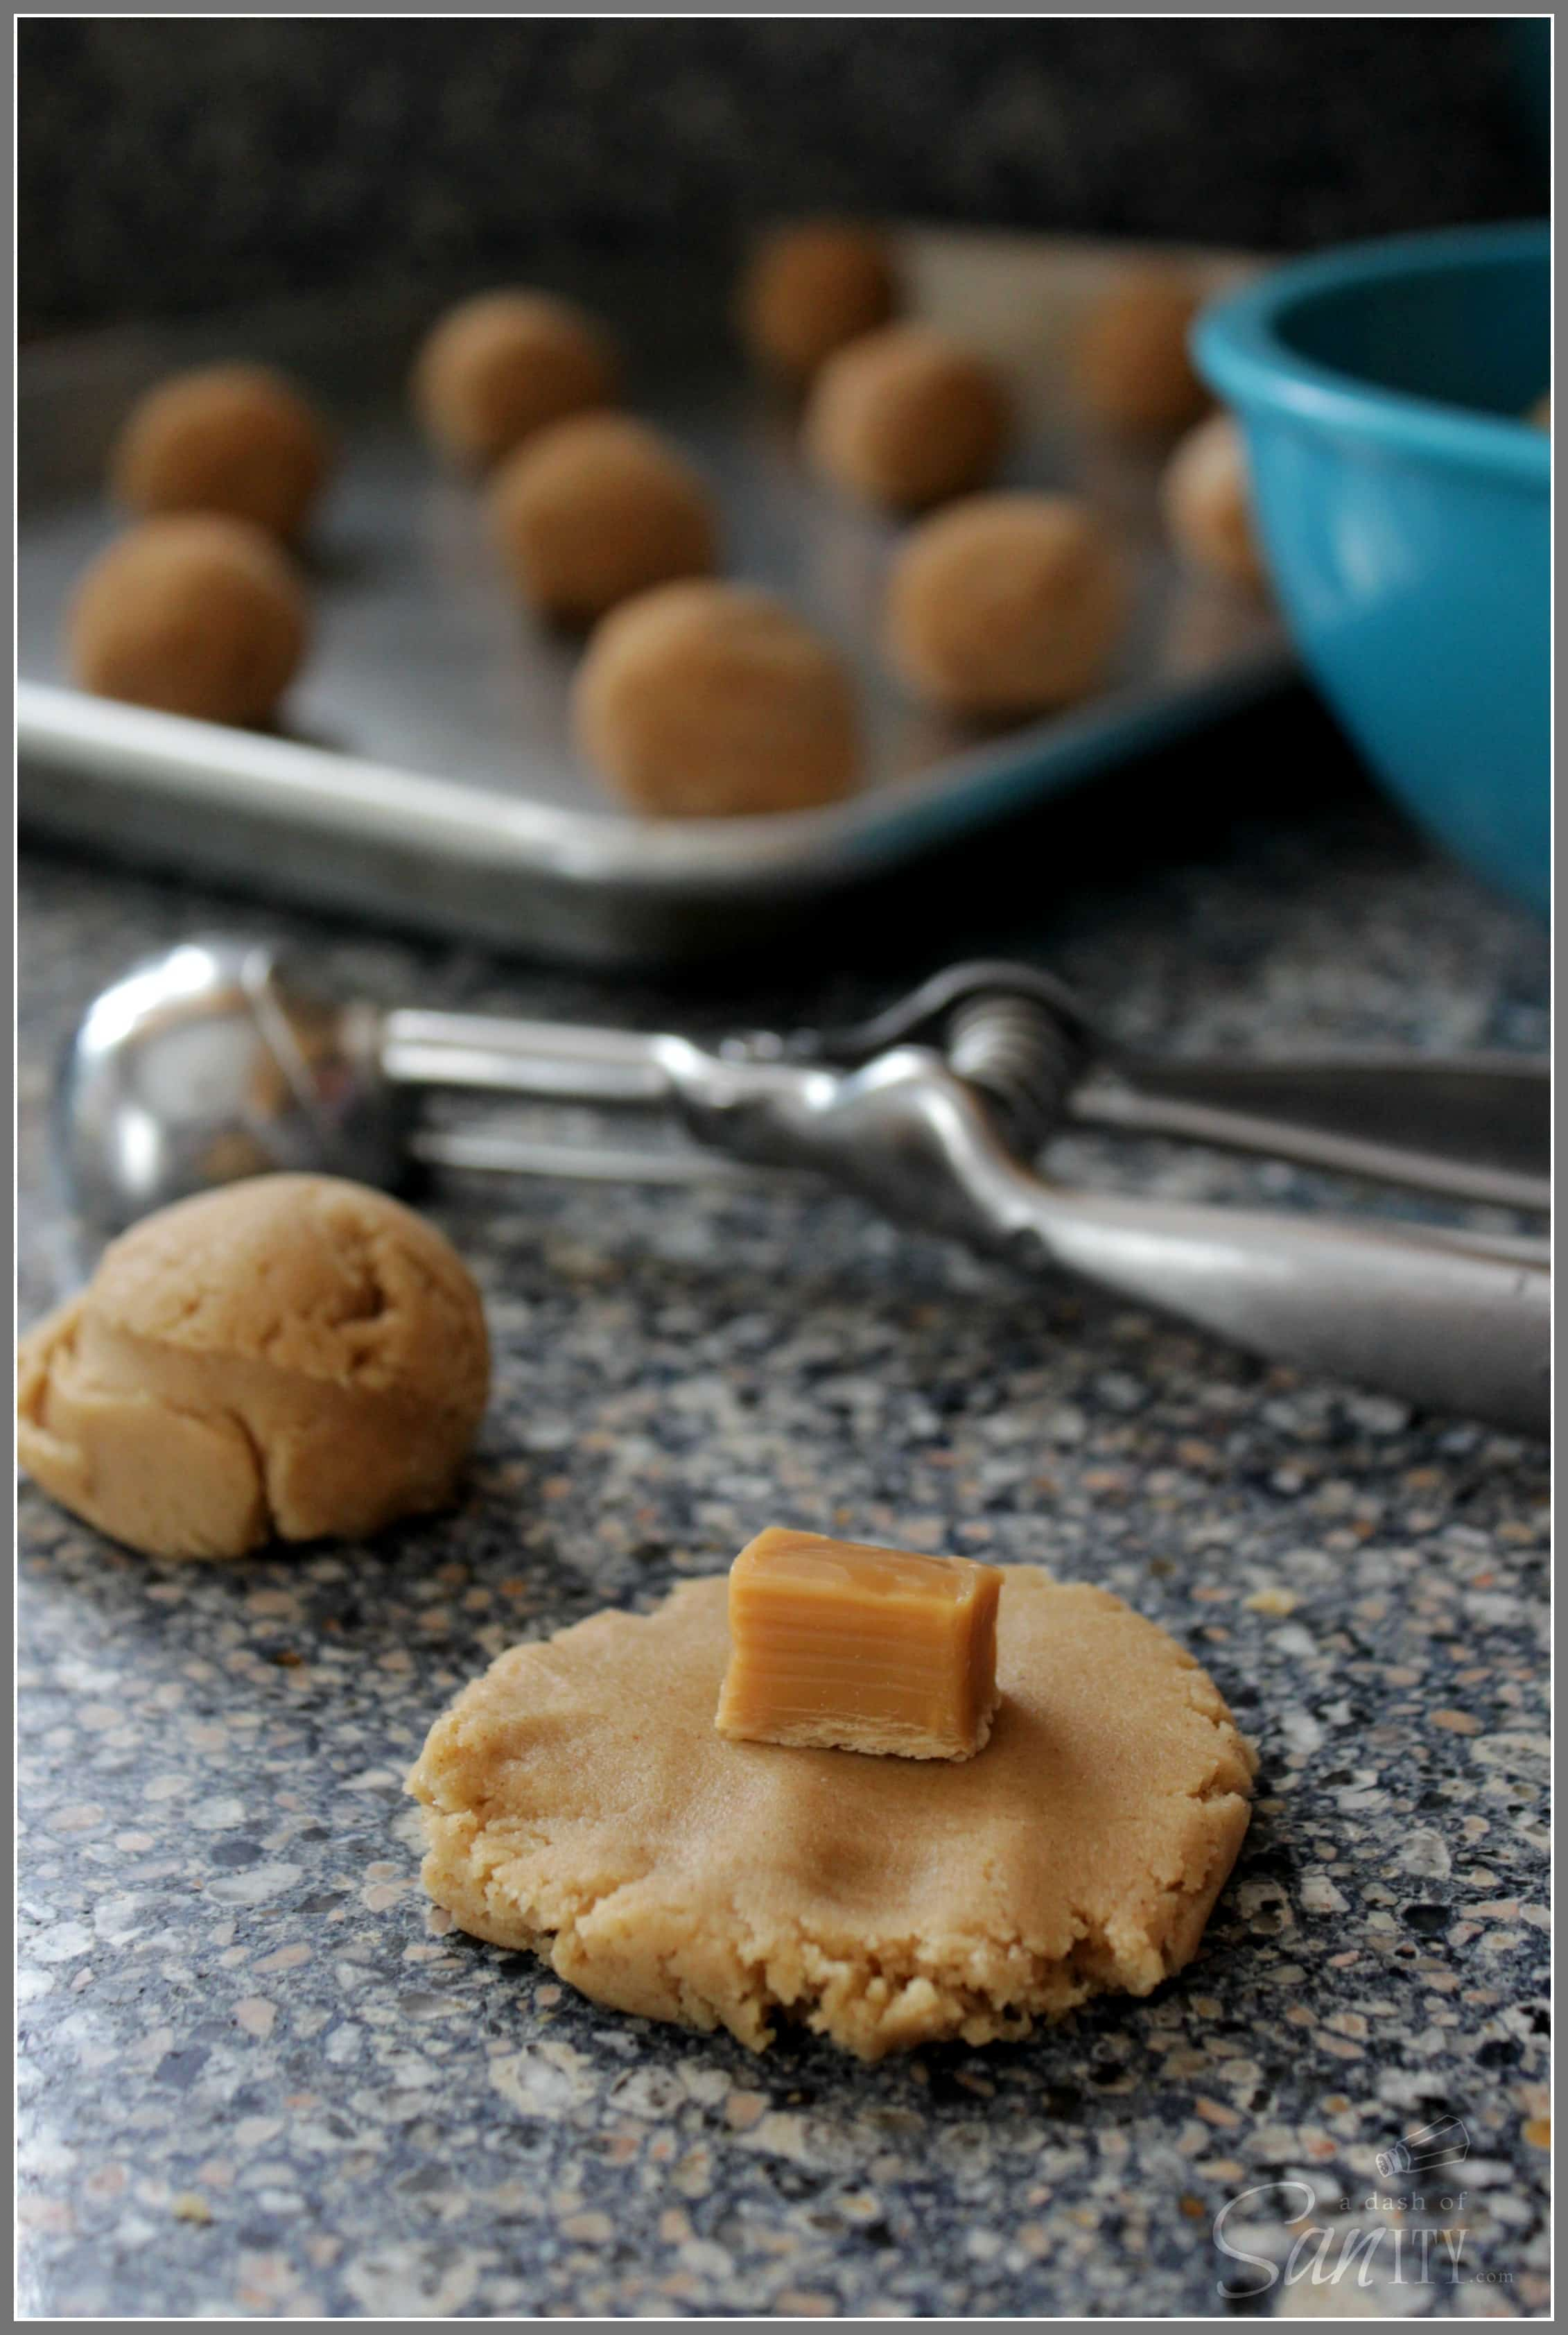 Salted Caramel & Brown Butter Snickerdoodles are addictive cookies with a gooey caramel center, a dash of sea salt, and garnished with cinnamon sugar.